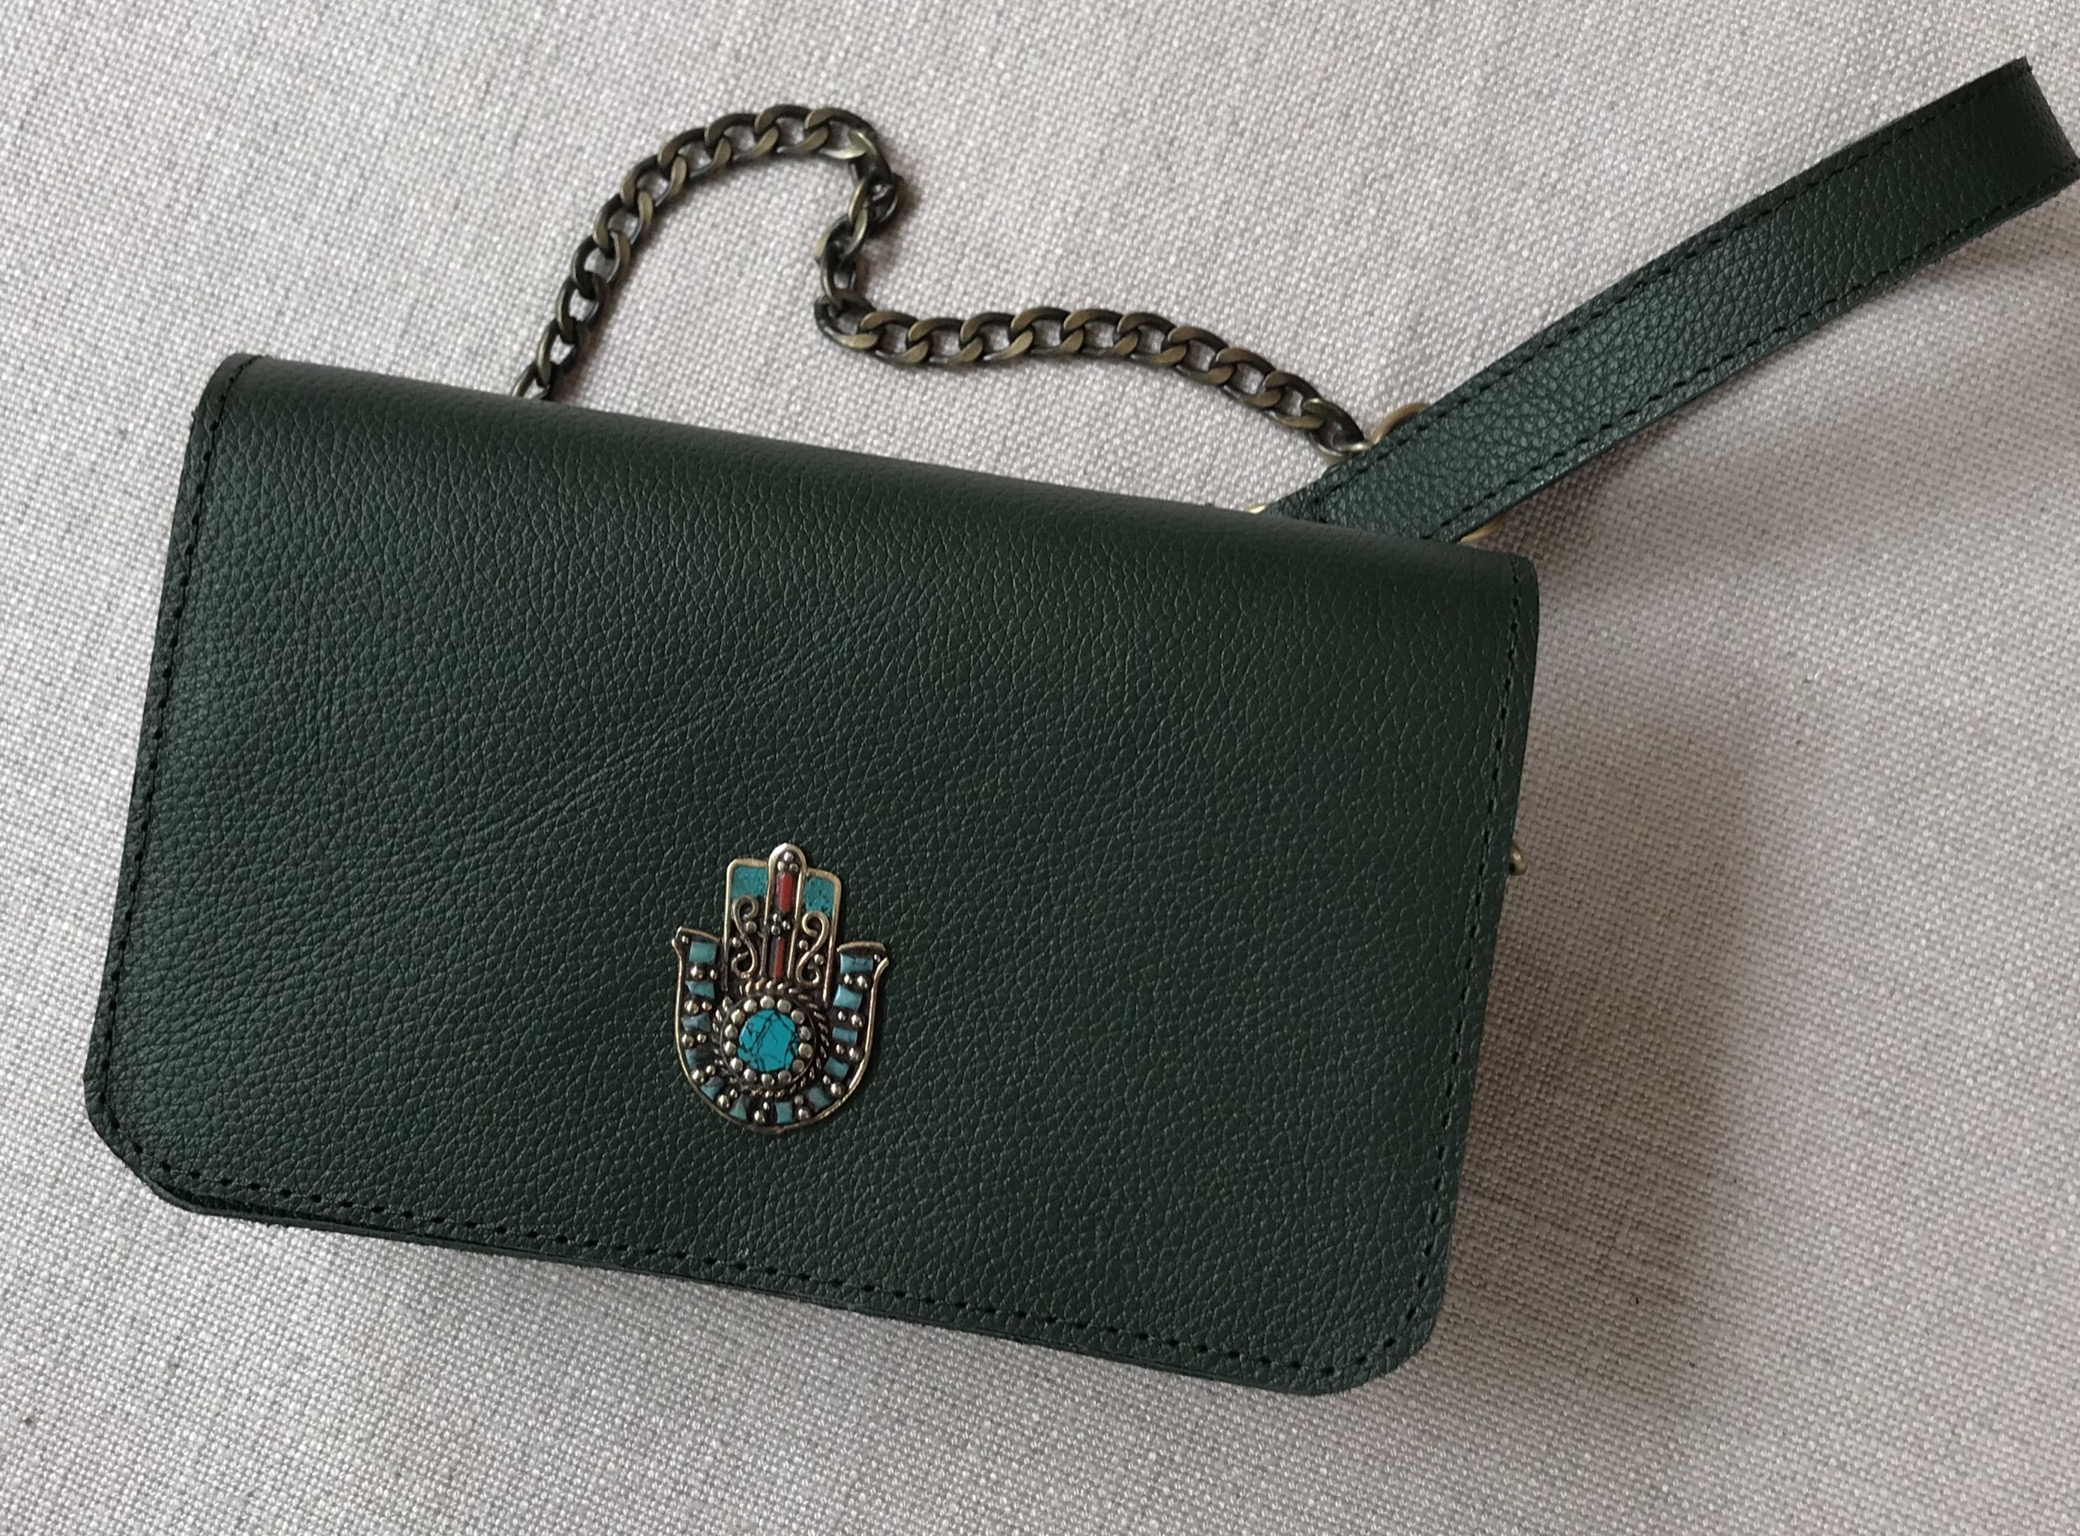 Bag mini leather green with jewelry